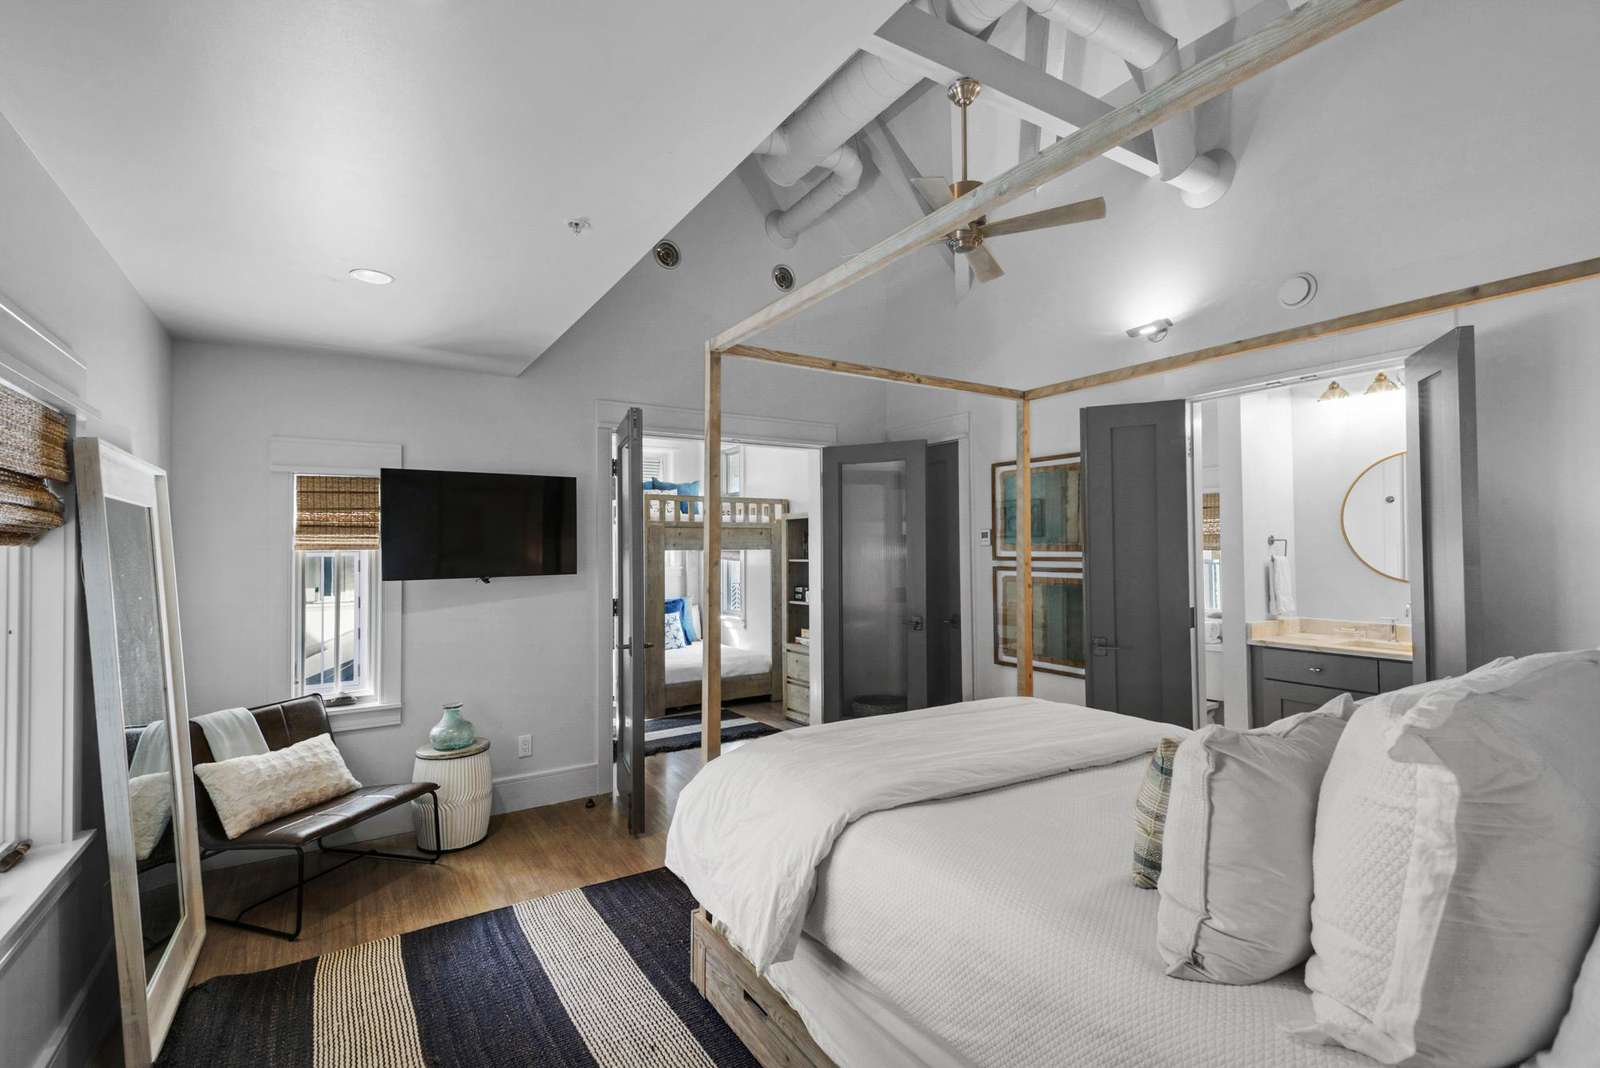 Queen bedroom w/adjoining bath shared with bunk area